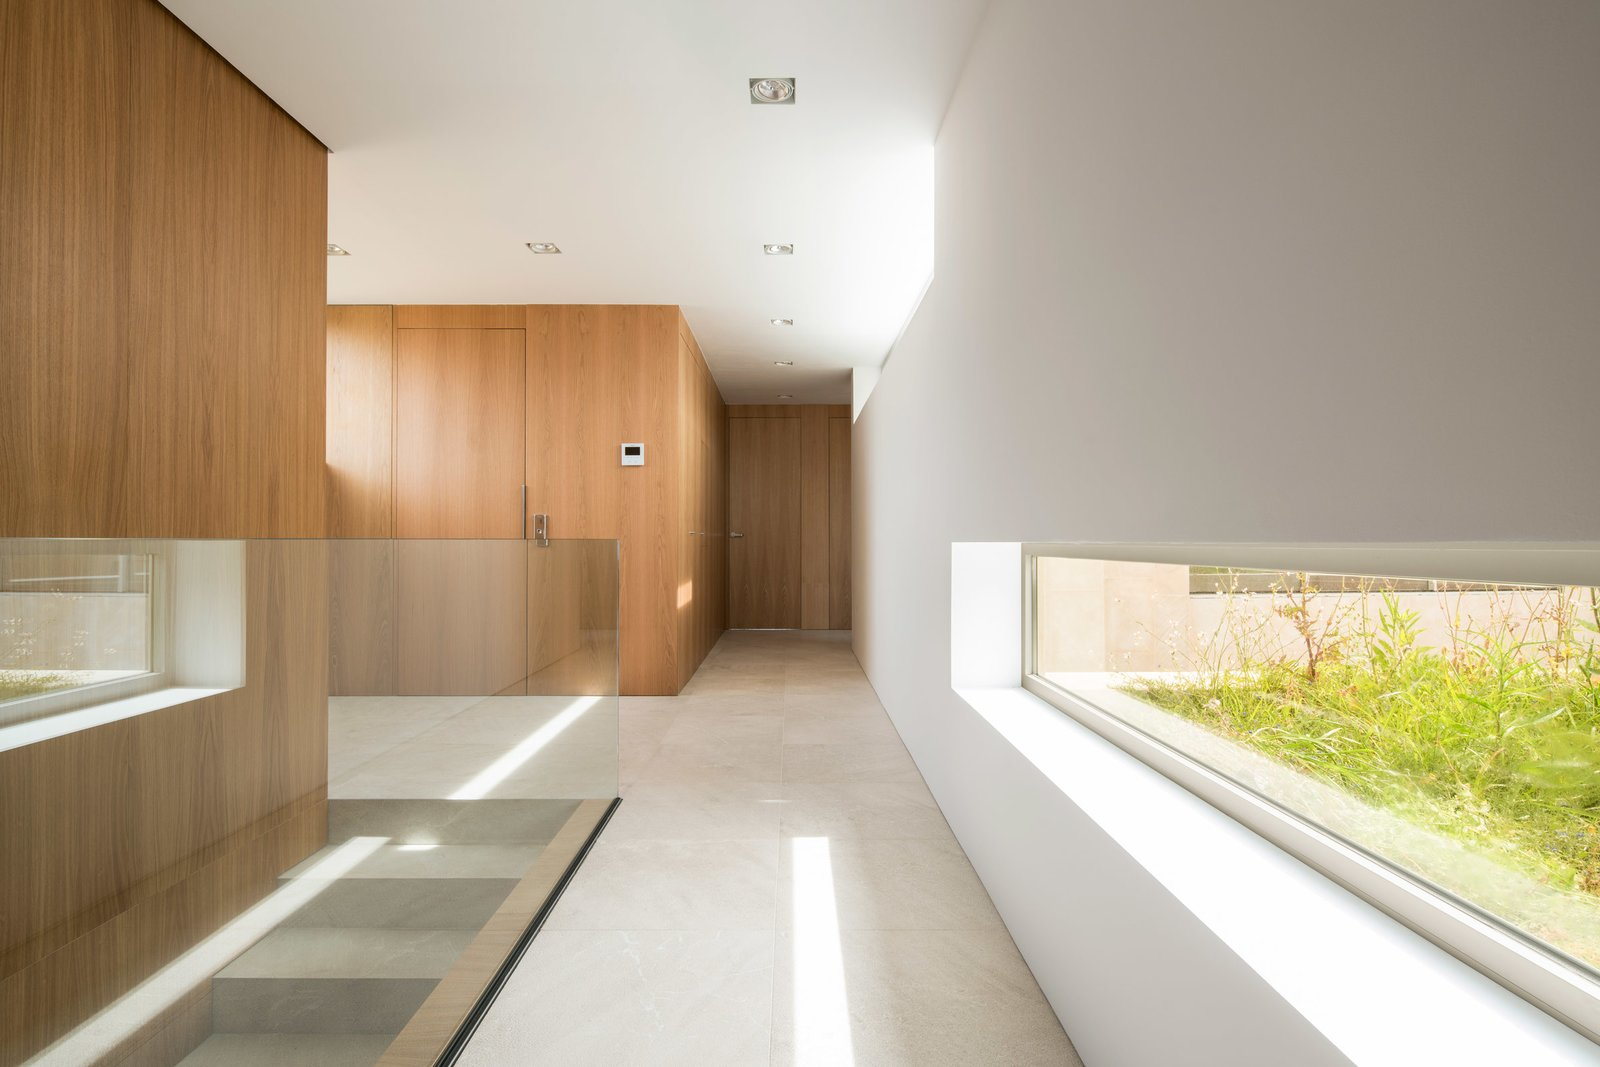 Hallway and Limestone Floor  M3 House by OLARQ Osvaldo Luppi Architects